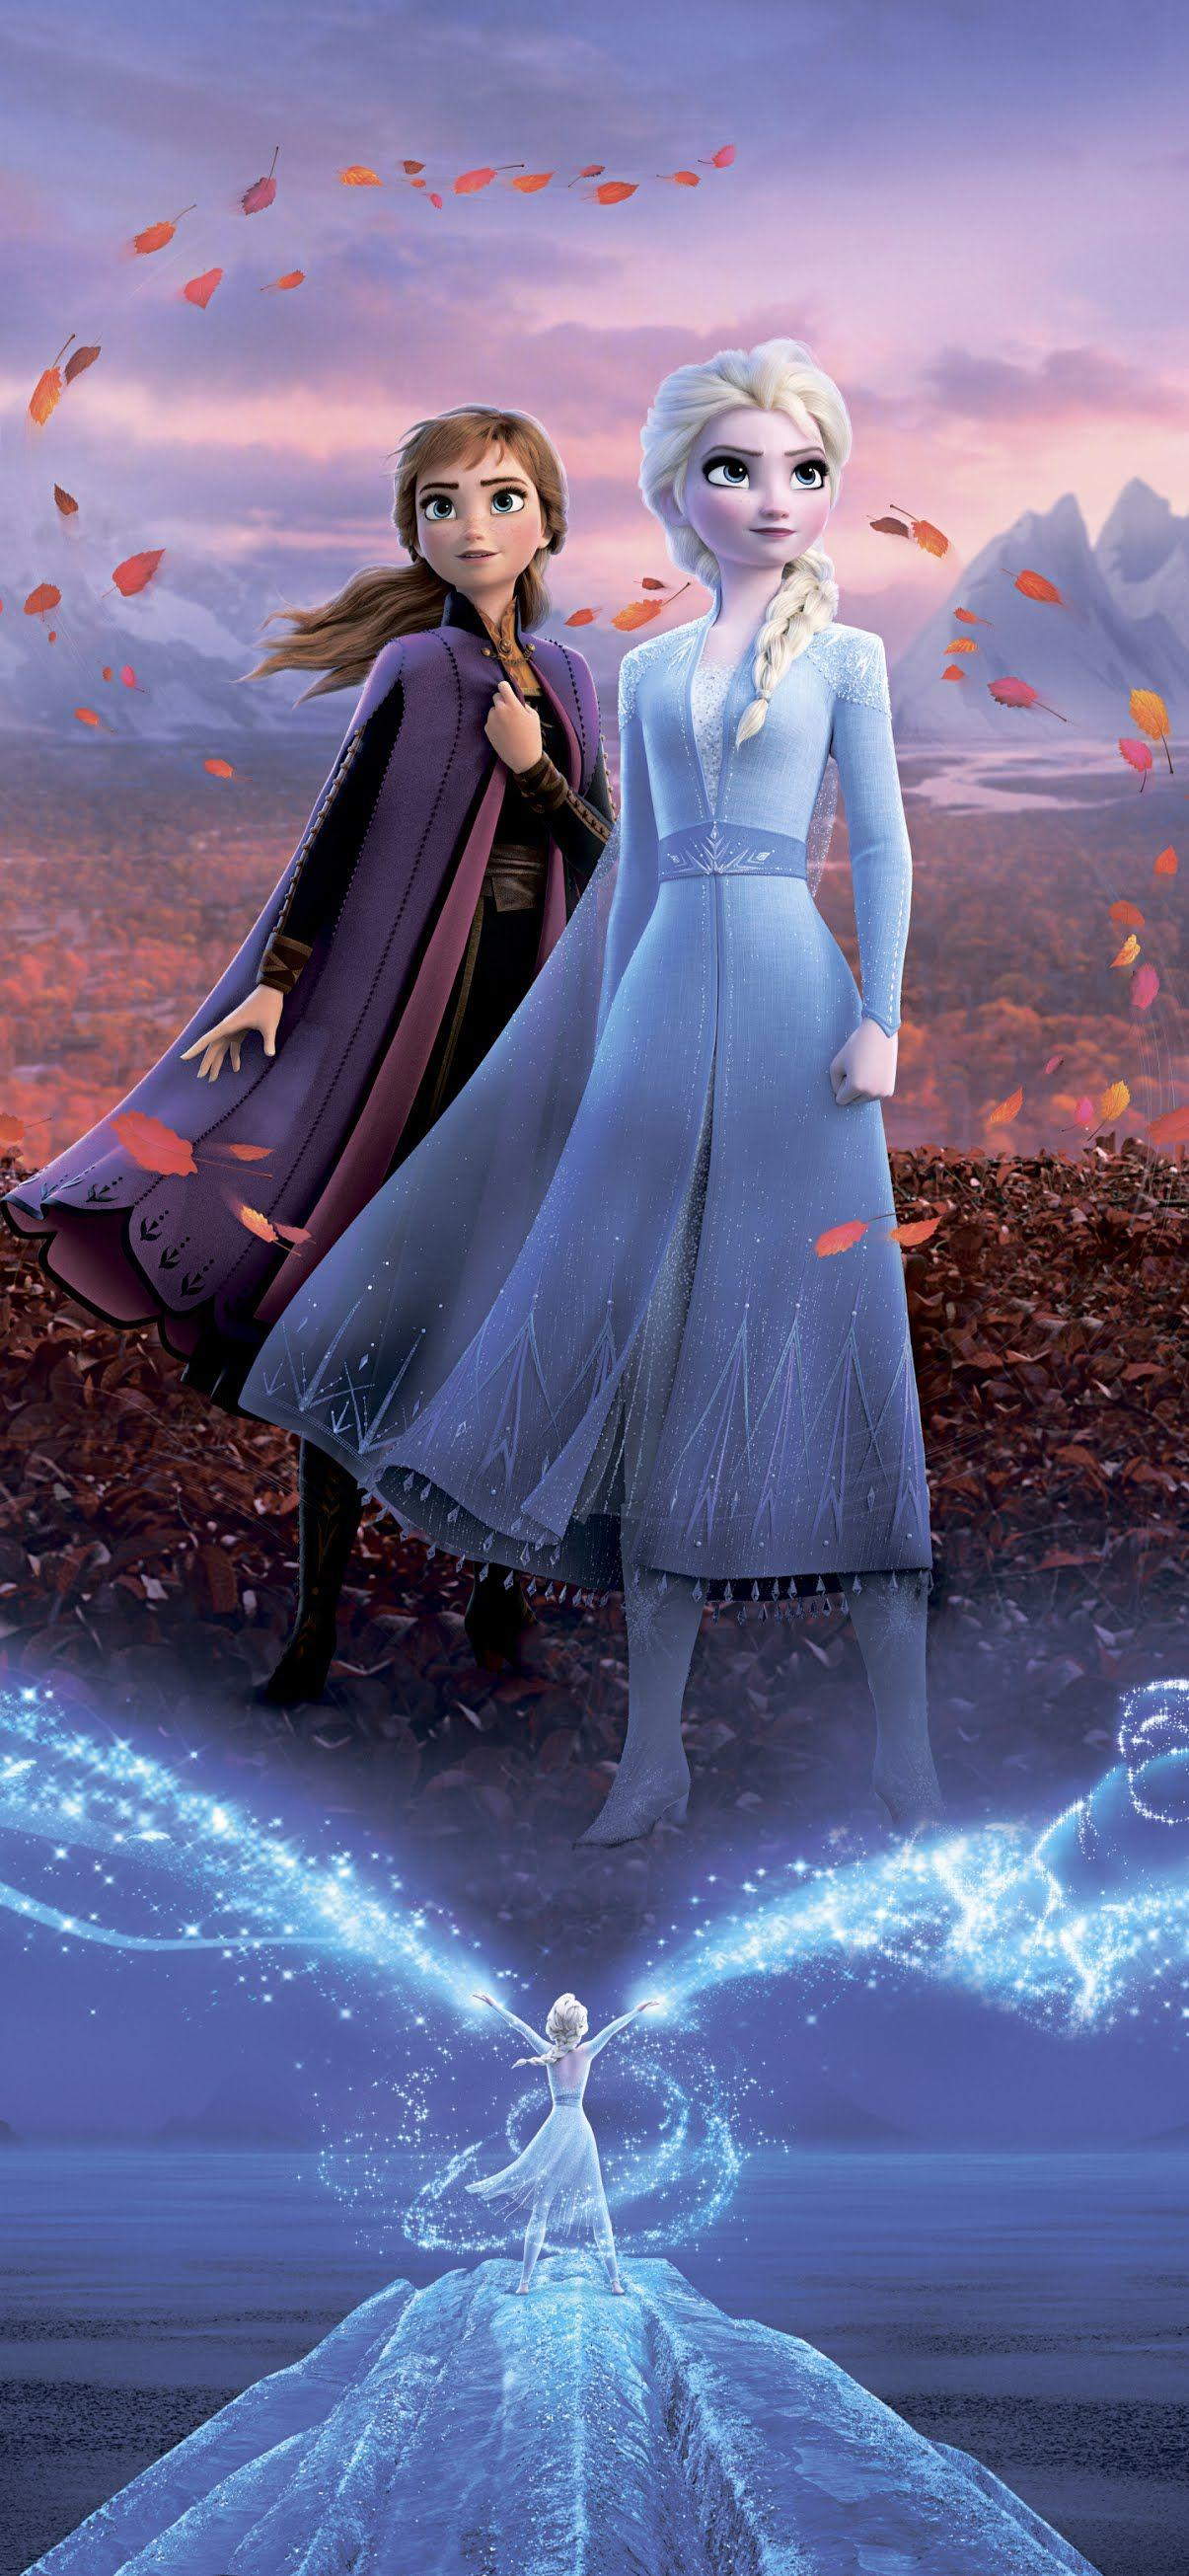 Frozen 2 Android Wallpapers Wallpaper Cave